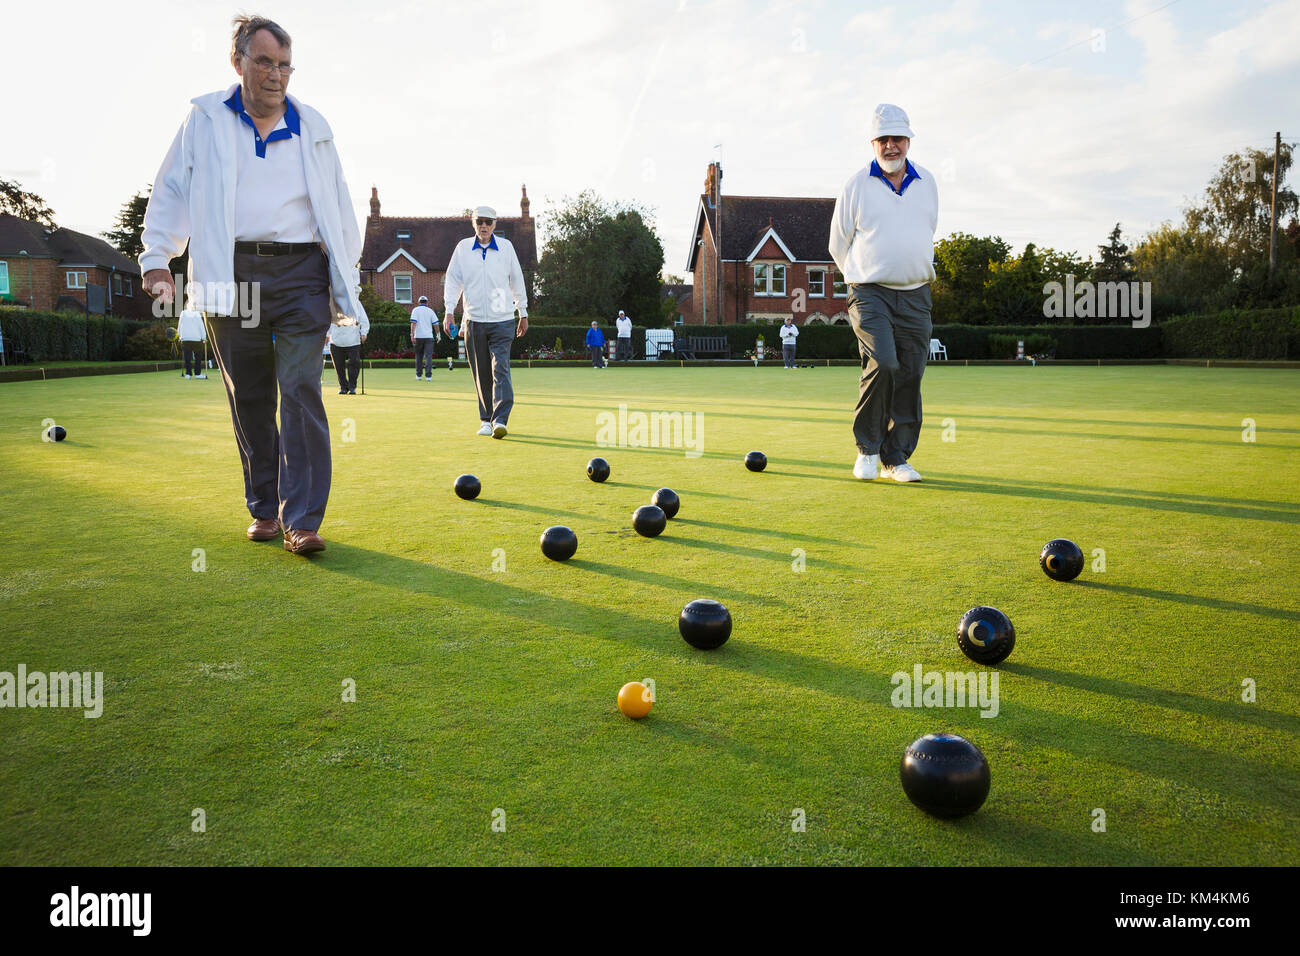 Three lawn bowls players, men walking across the green, the playing surface, at an end with bowls clustered around - Stock Image